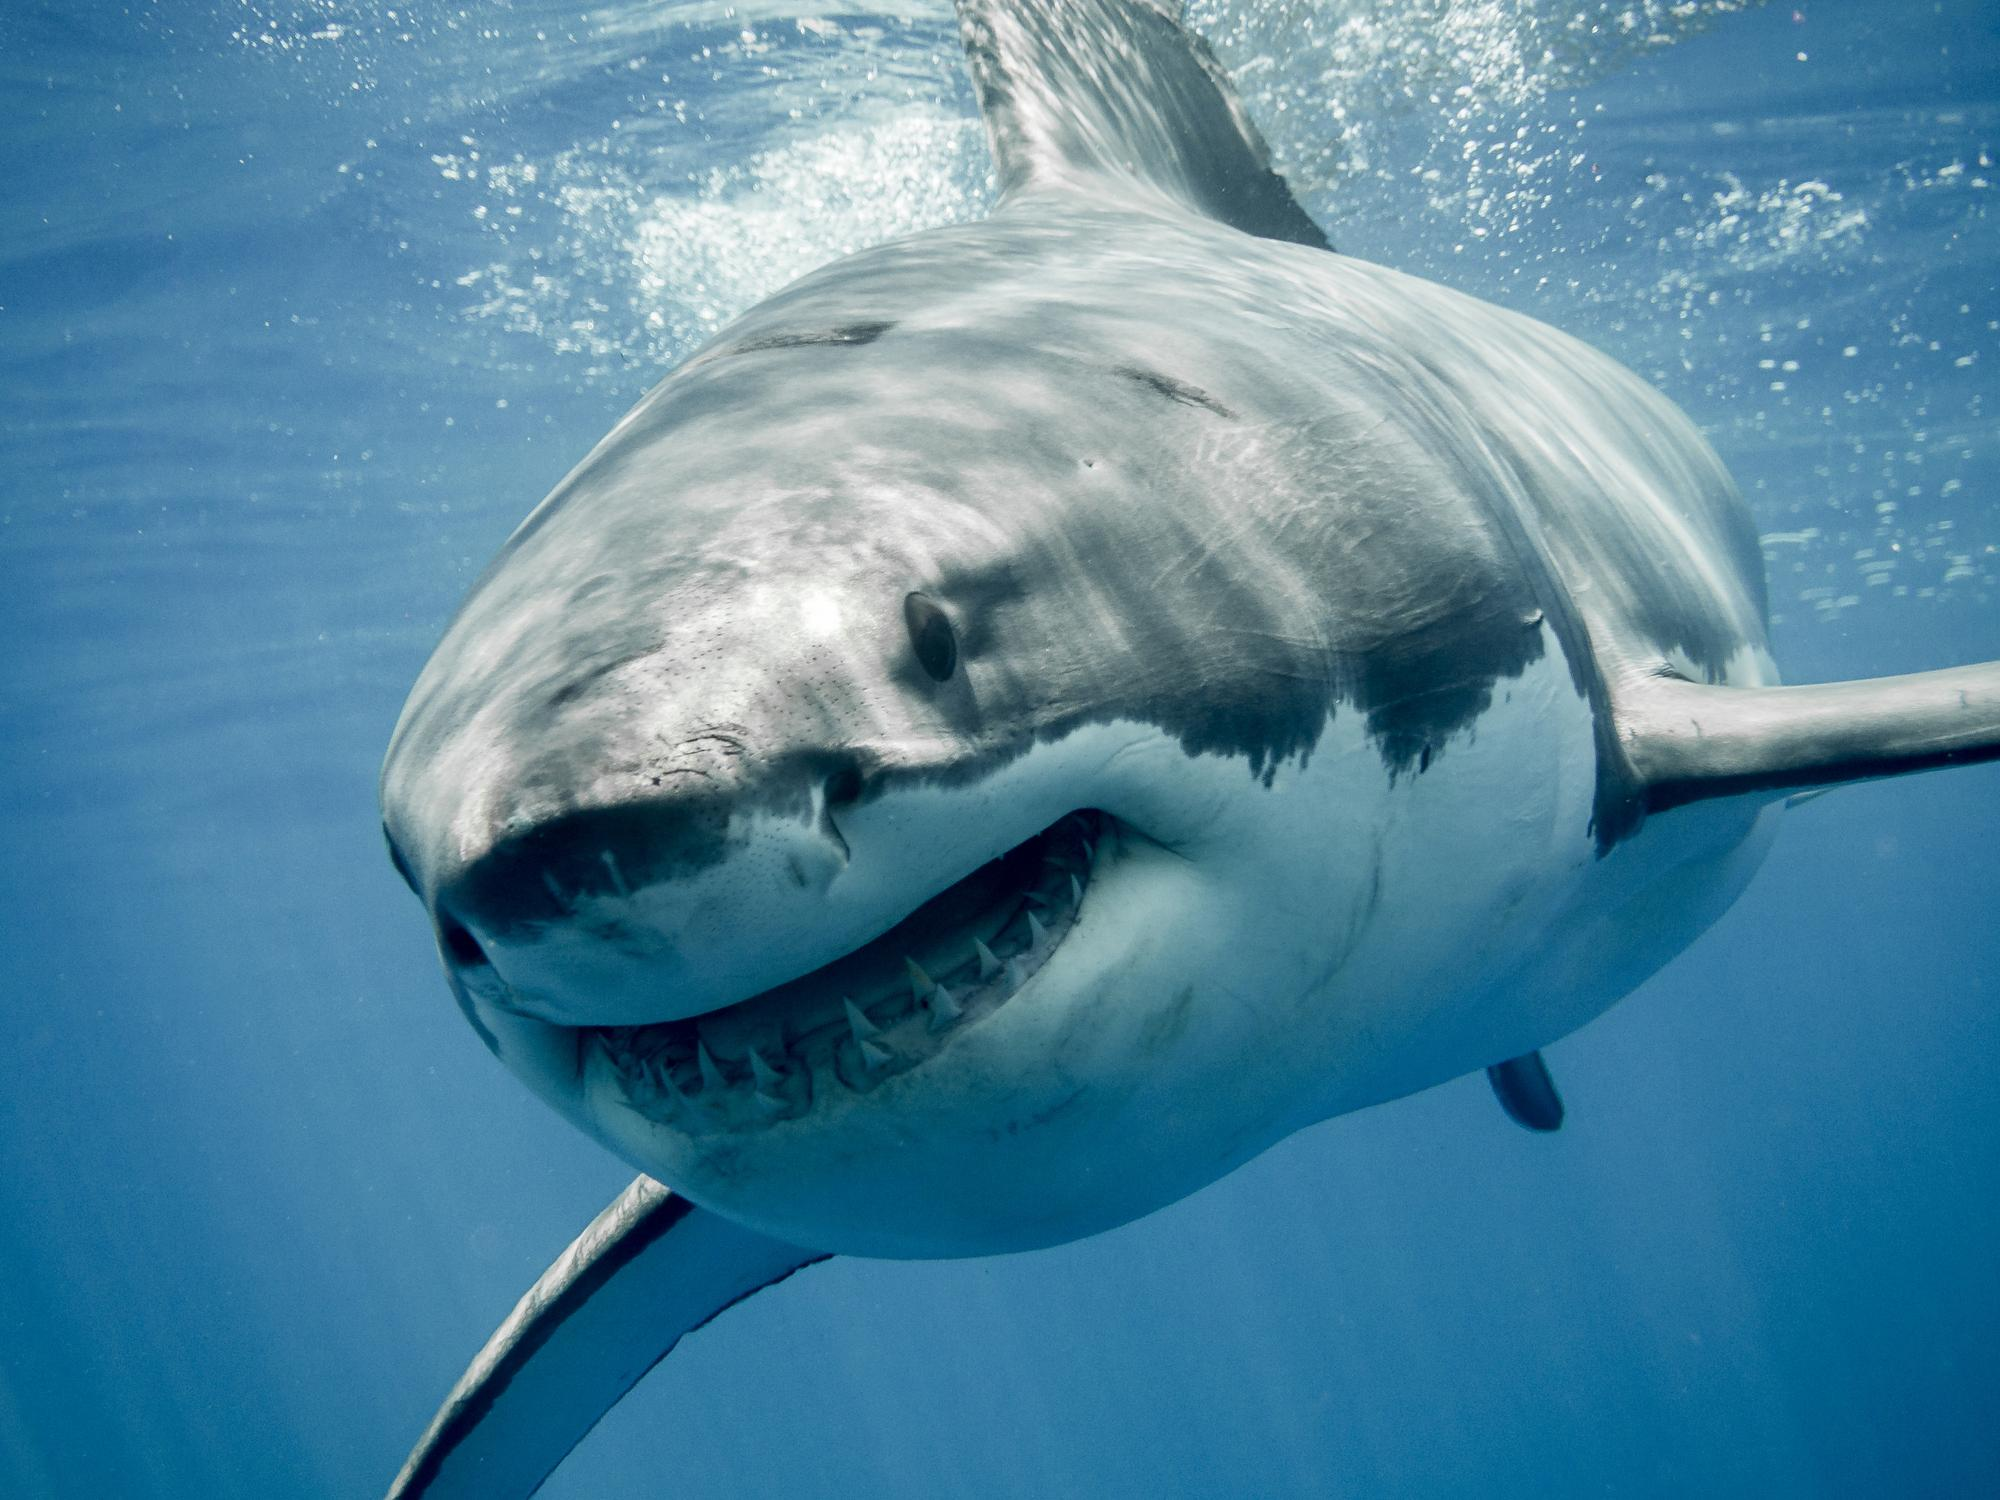 Sharks - latest news, breaking stories and comment - The